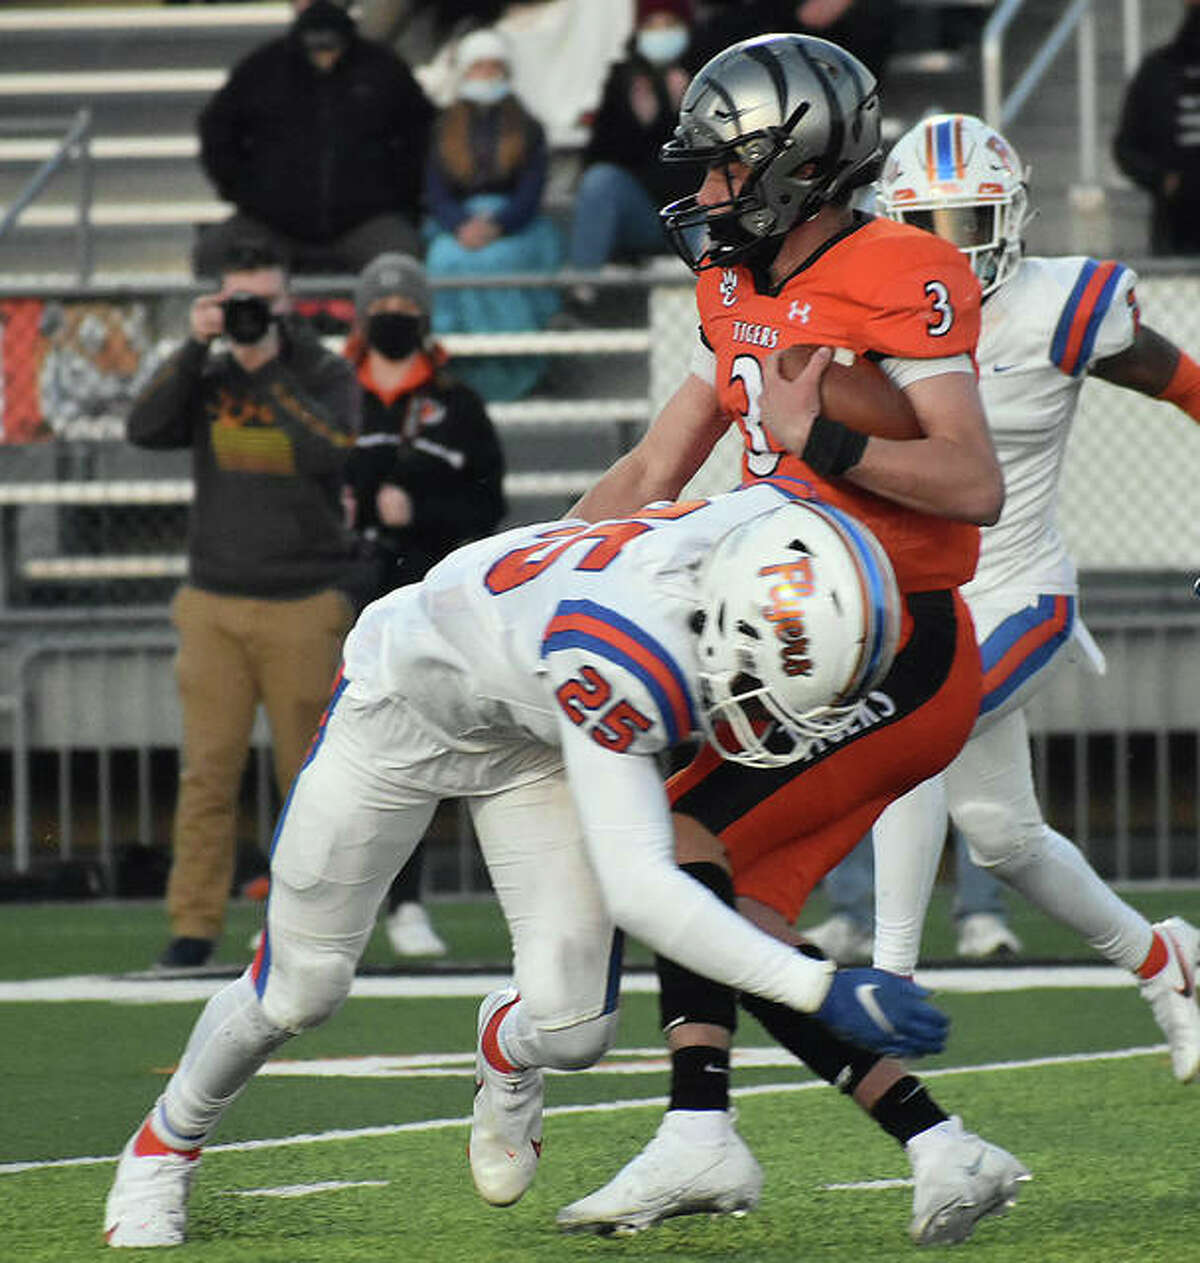 Edwardsville quarterback Ryan Hampton is tackled by East St. Louis safety Dallas Brown in the first quarter.